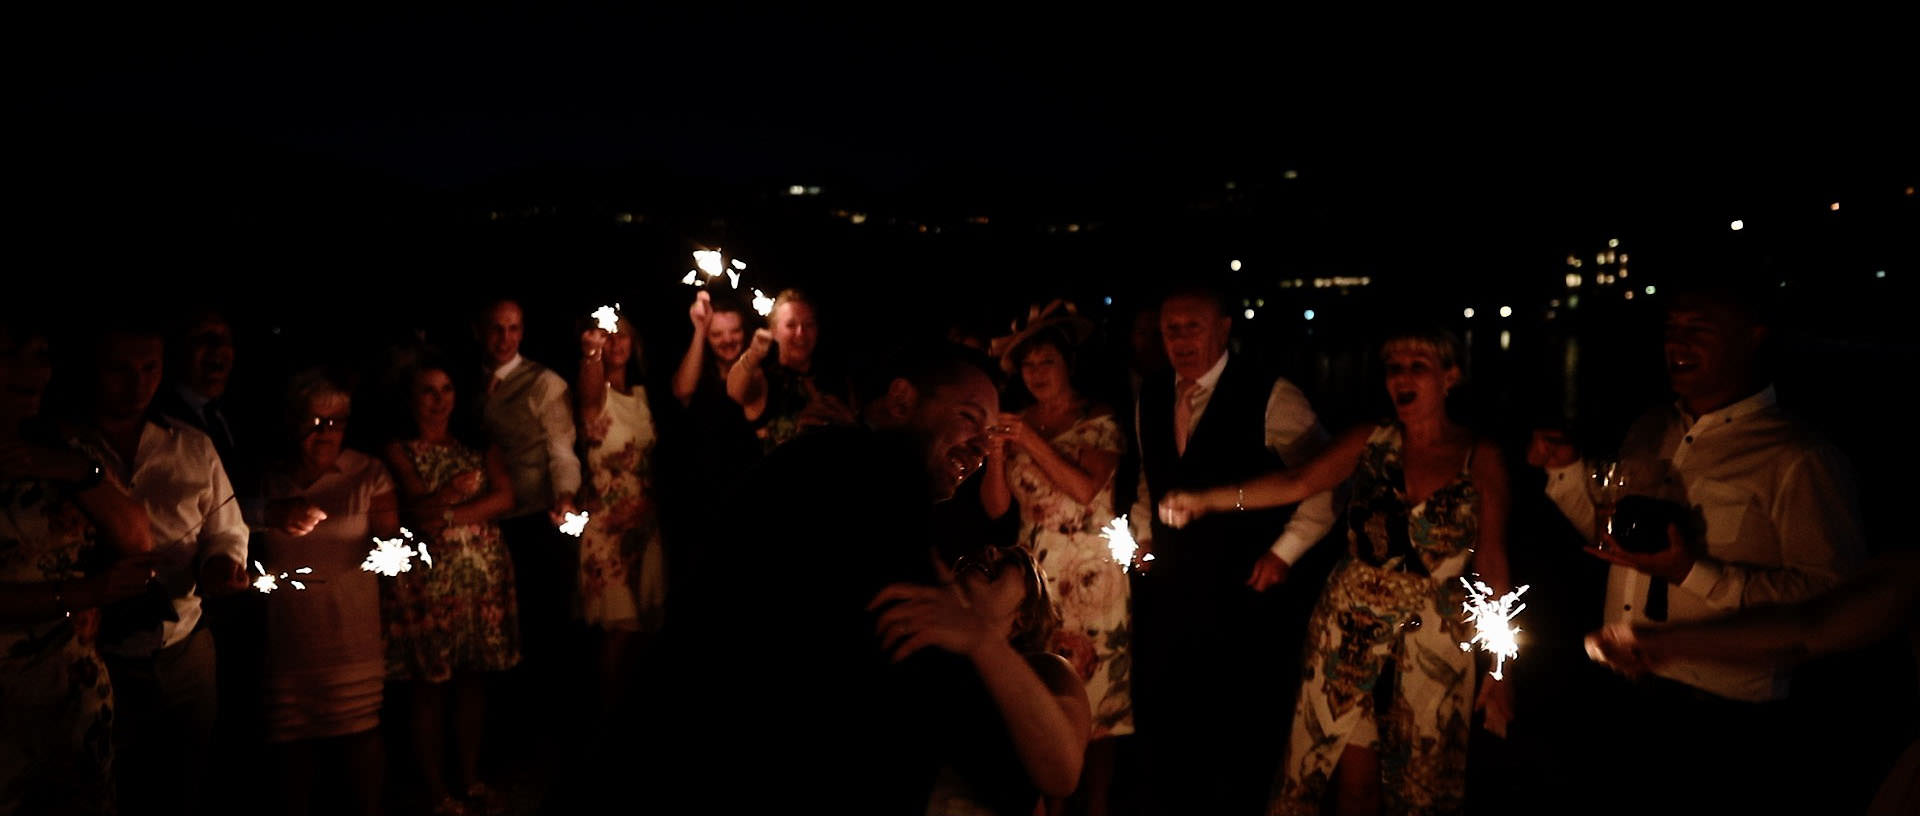 Malcesine Destination Wedding Film Tiffany & Philip Short FIlm 10 Cropped.jpg